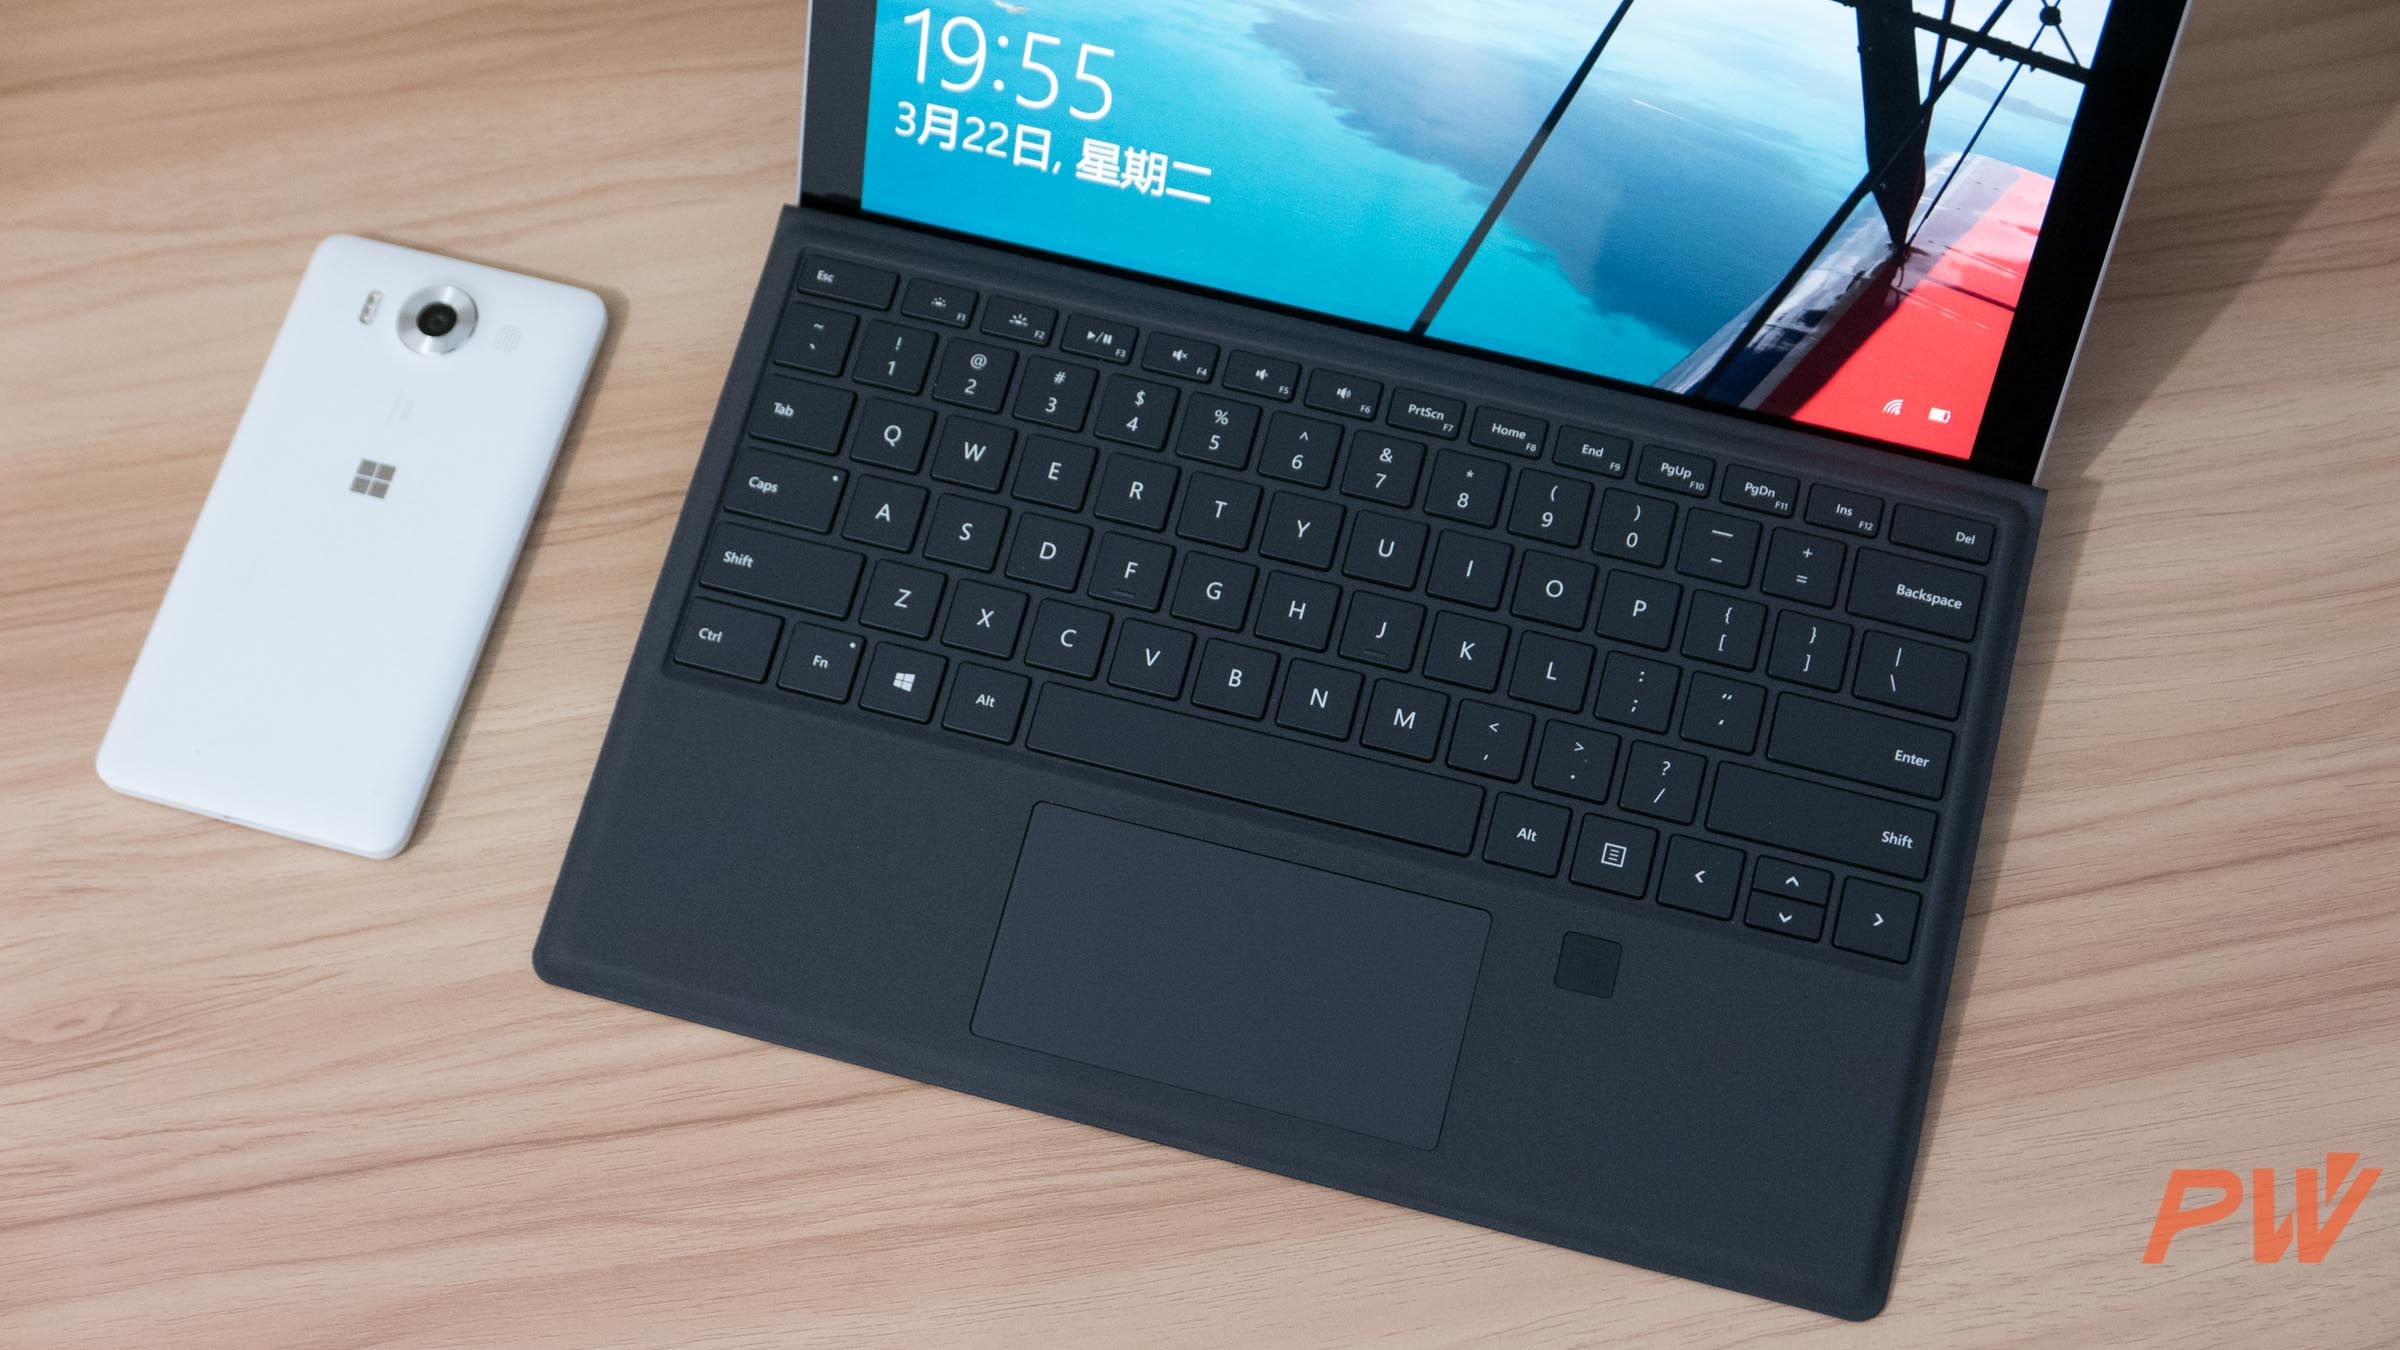 Microsoft Surface Pro 4 type cover with finger print PingWest Photo By Hao Ying-8